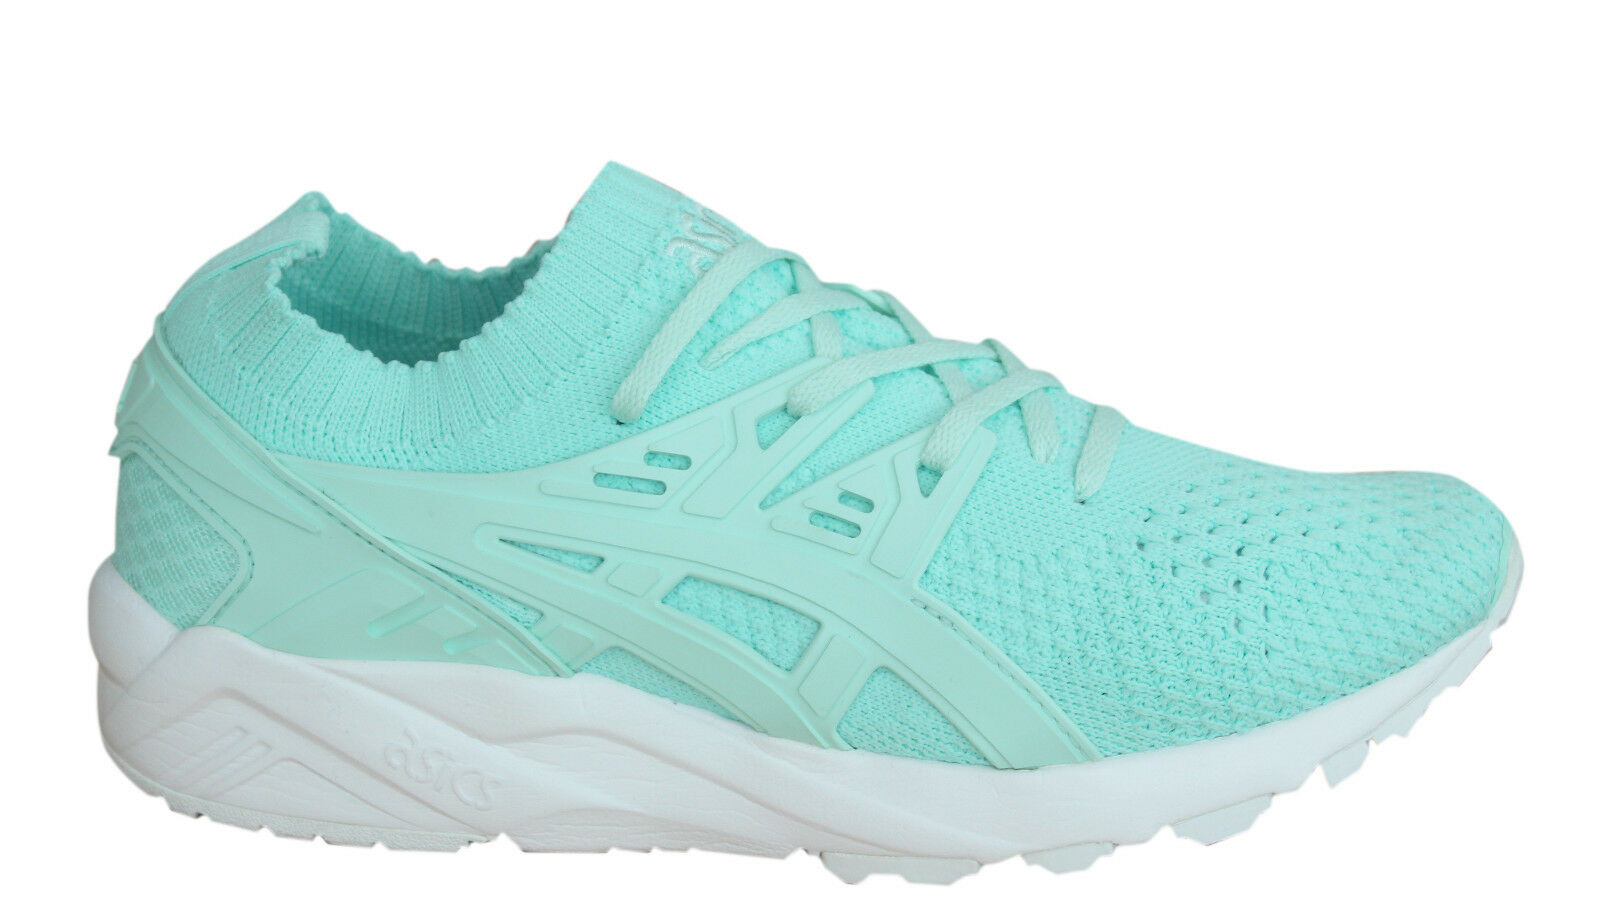 Asics Gel-Kayano Lace Trainers Knit Damenschuhe Schuhes Lace Gel-Kayano Up Textile Mint H7N6N 8787 D35 936968